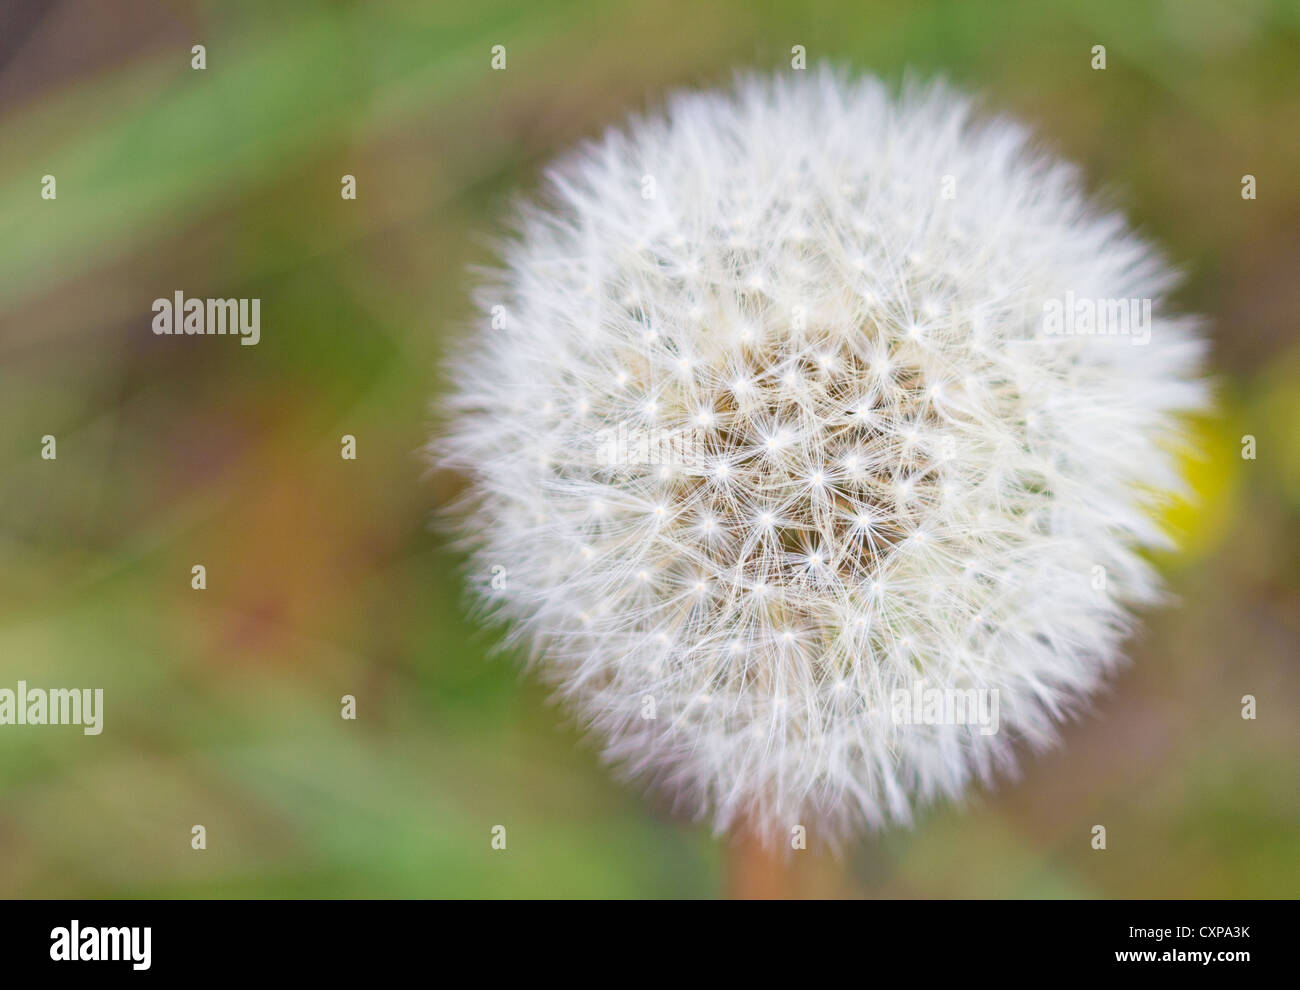 dandelion outdoors with textspace - Stock Image